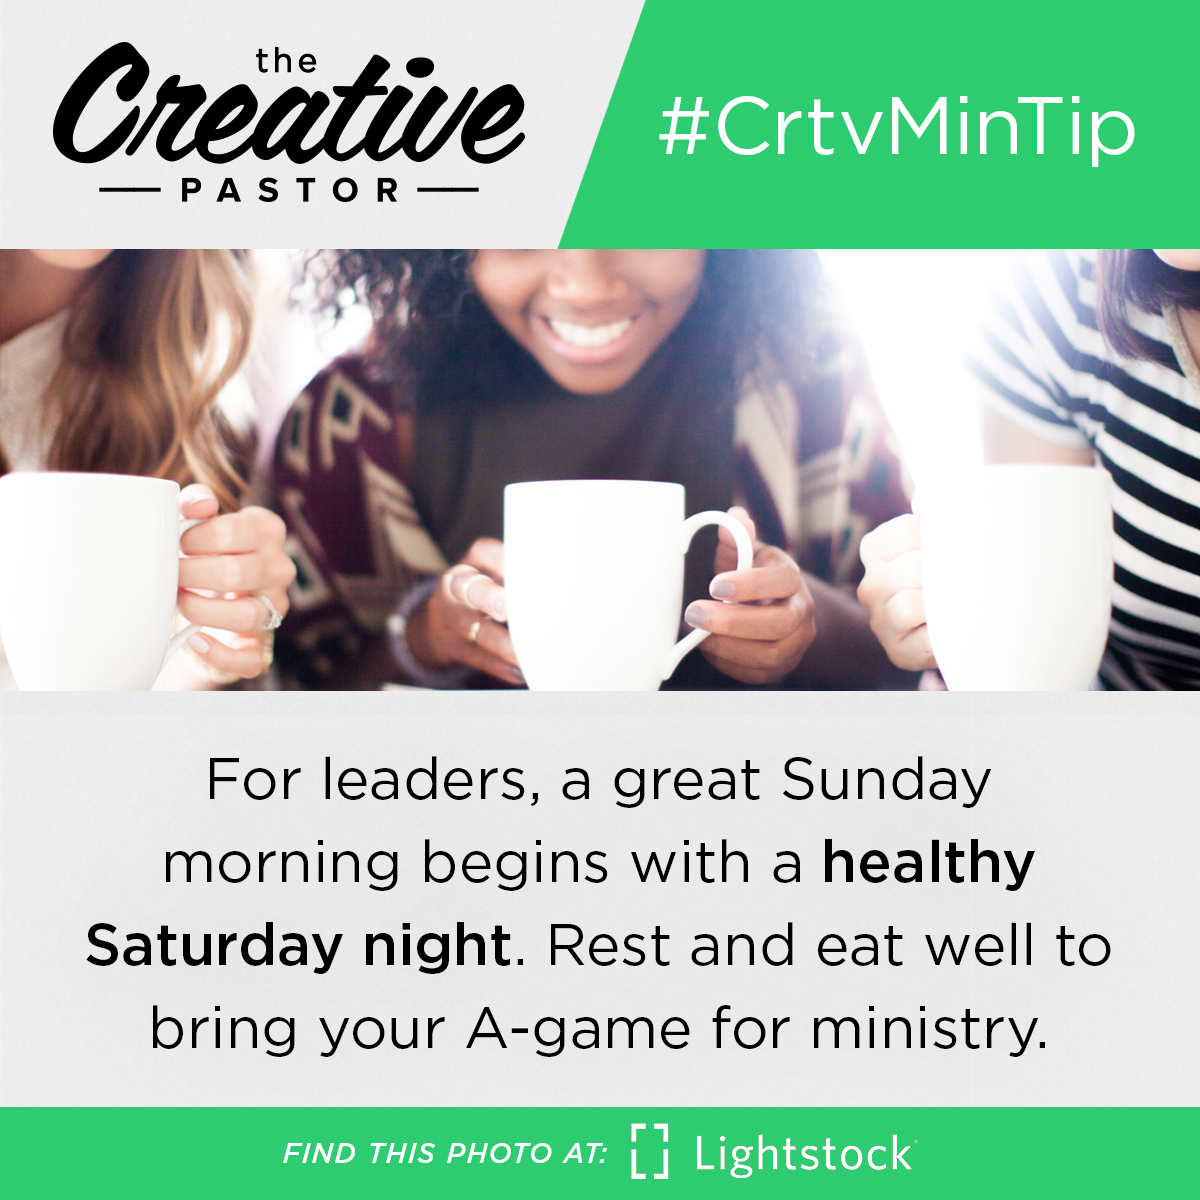 #CrtvMinTip: For leaders, a great Sunday morning begins with a healthy Saturday night. Rest and eat well to bring your A-game for ministry.